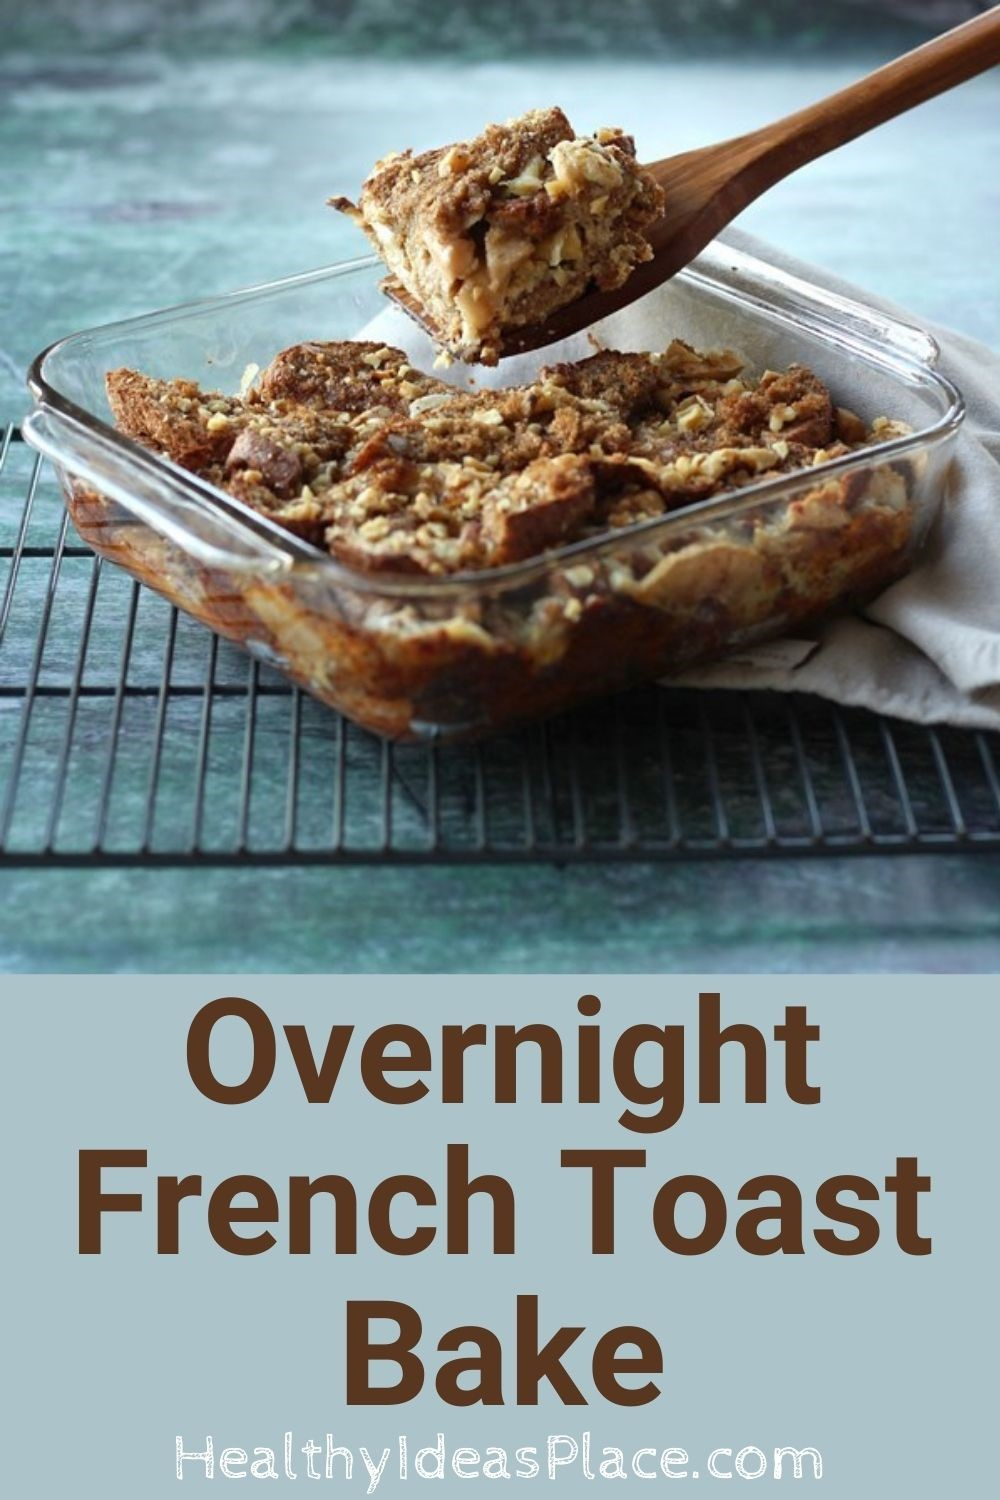 Breakfast casserole of french toast in clear baking dish